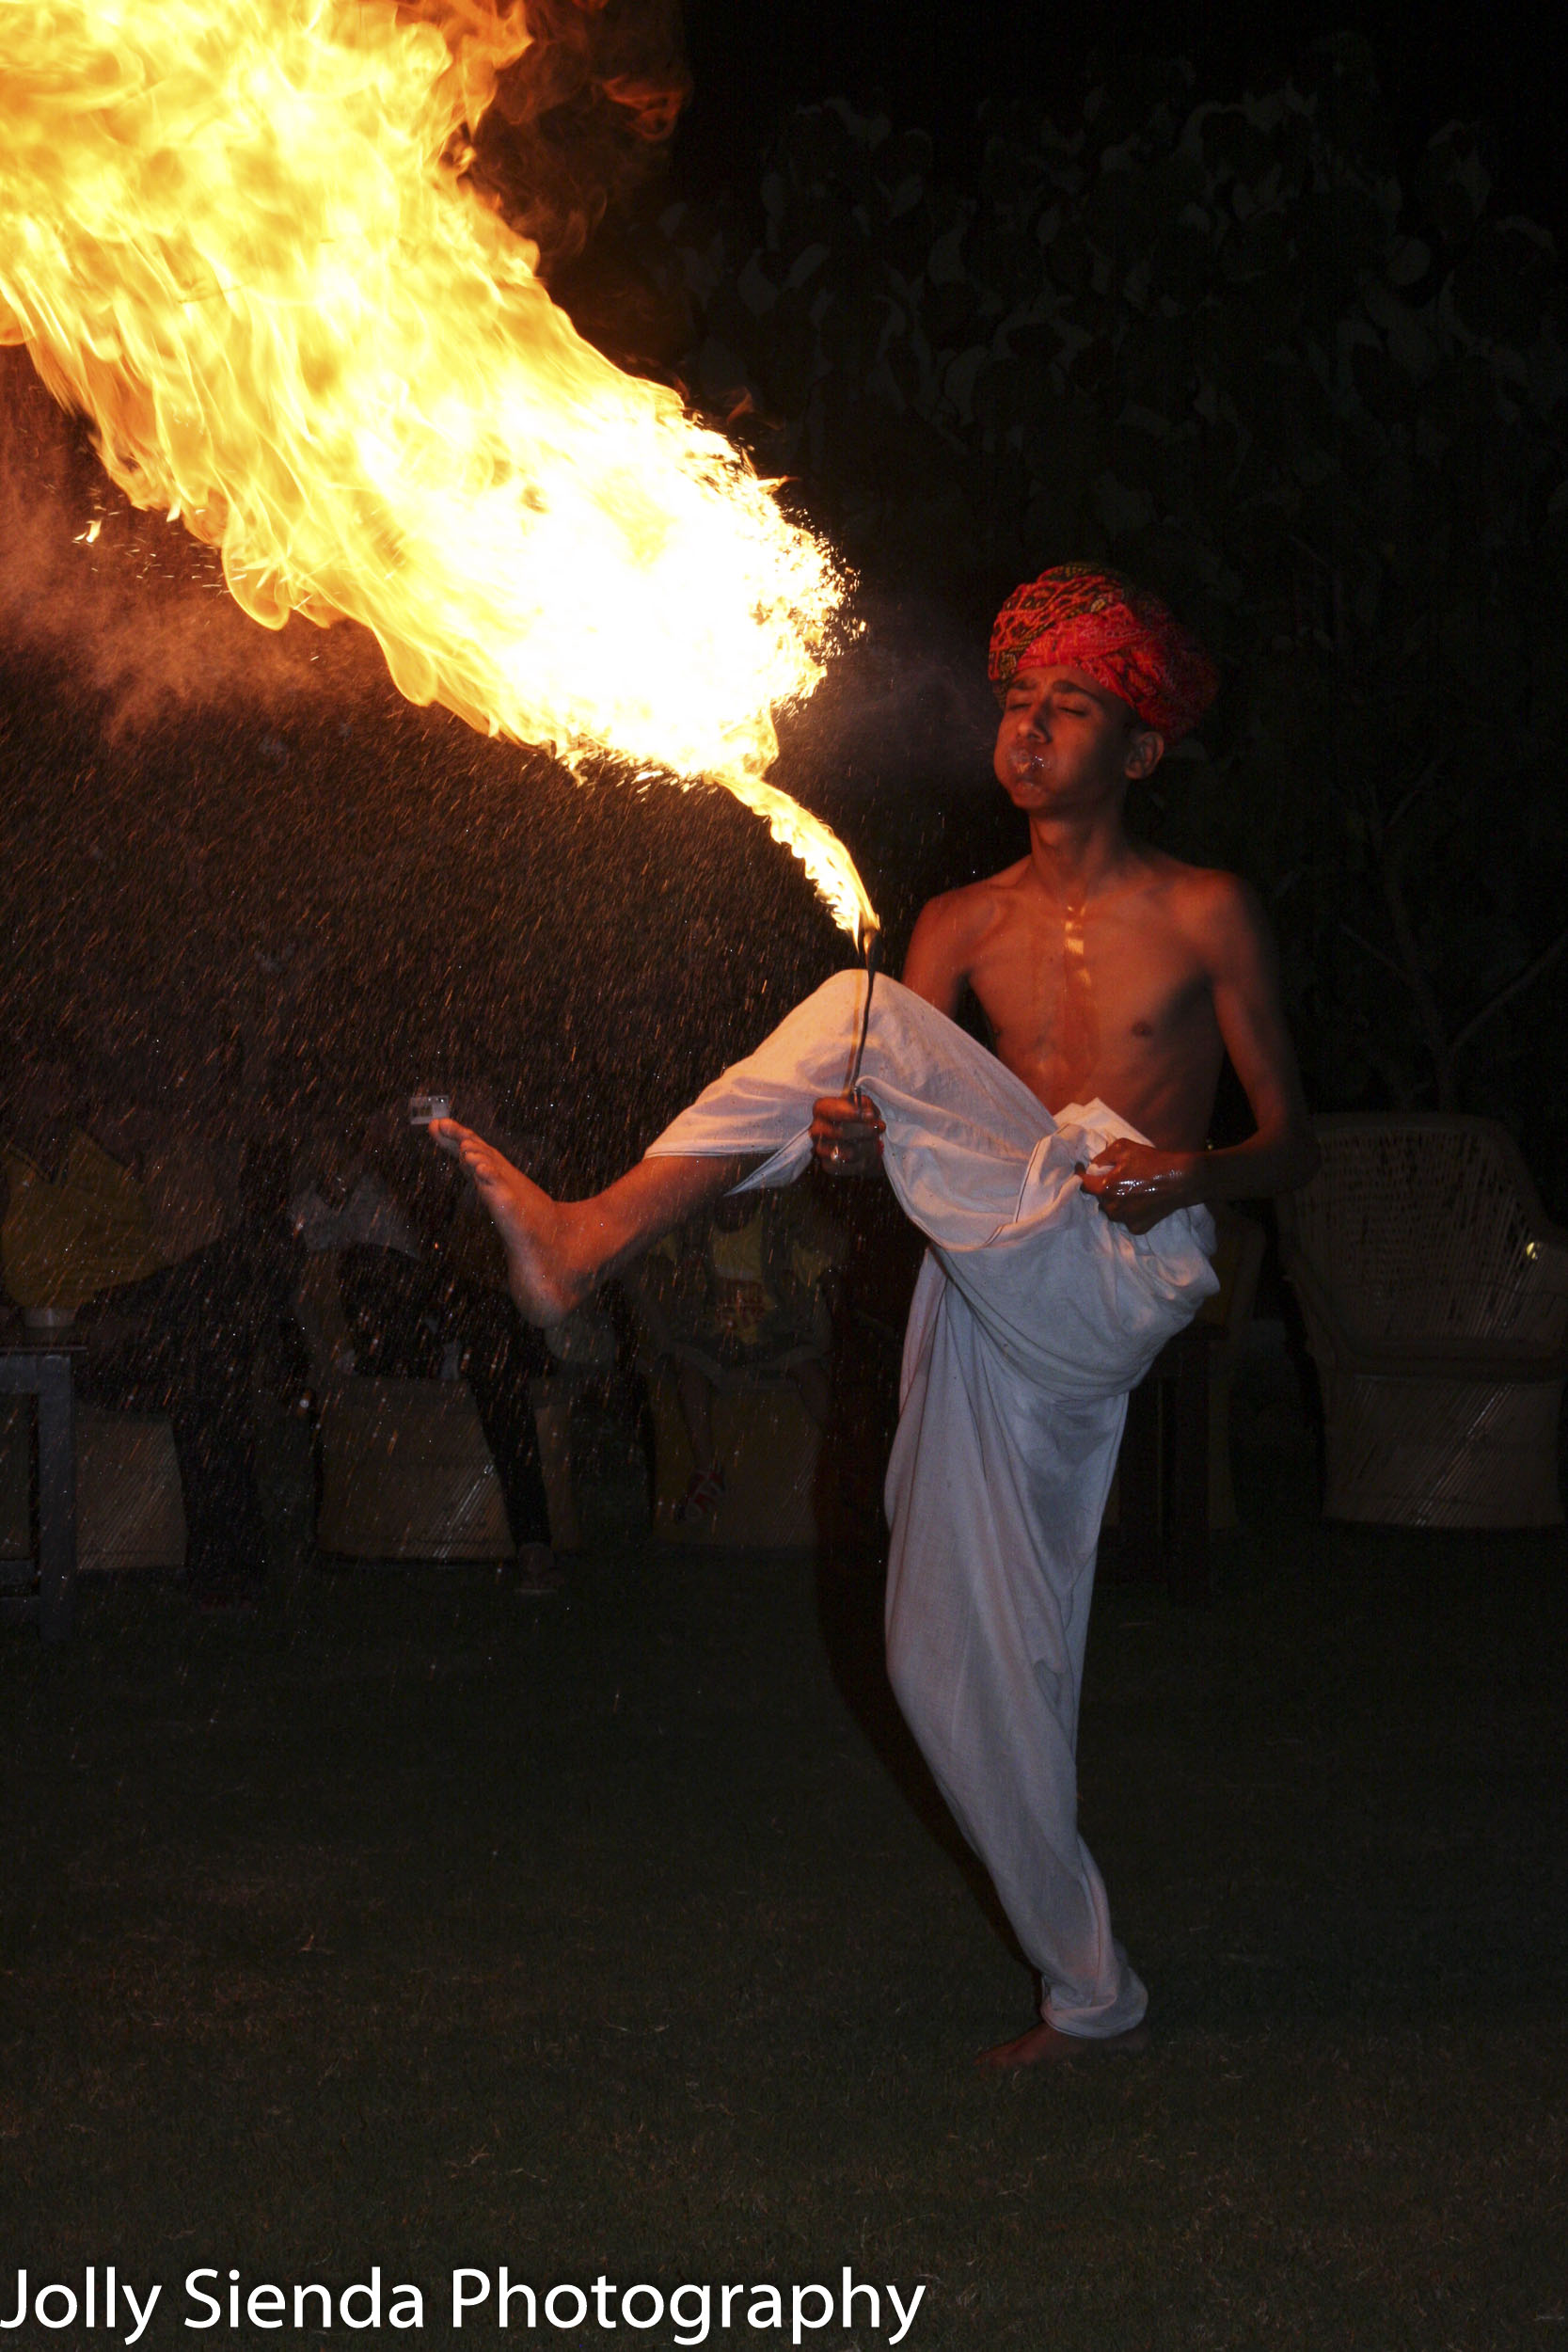 Man in the turban performing a dance with a large fire flame